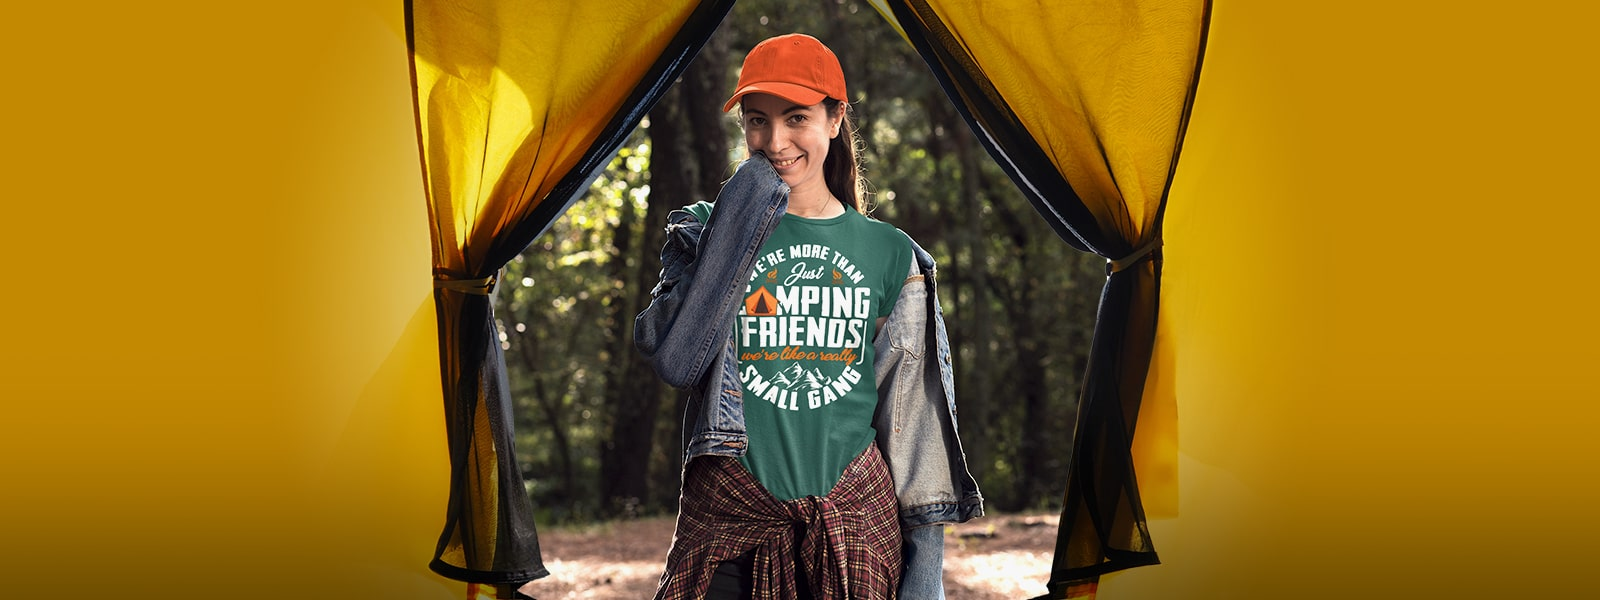 The Most Amazing Camping Gifts Collection Available Now